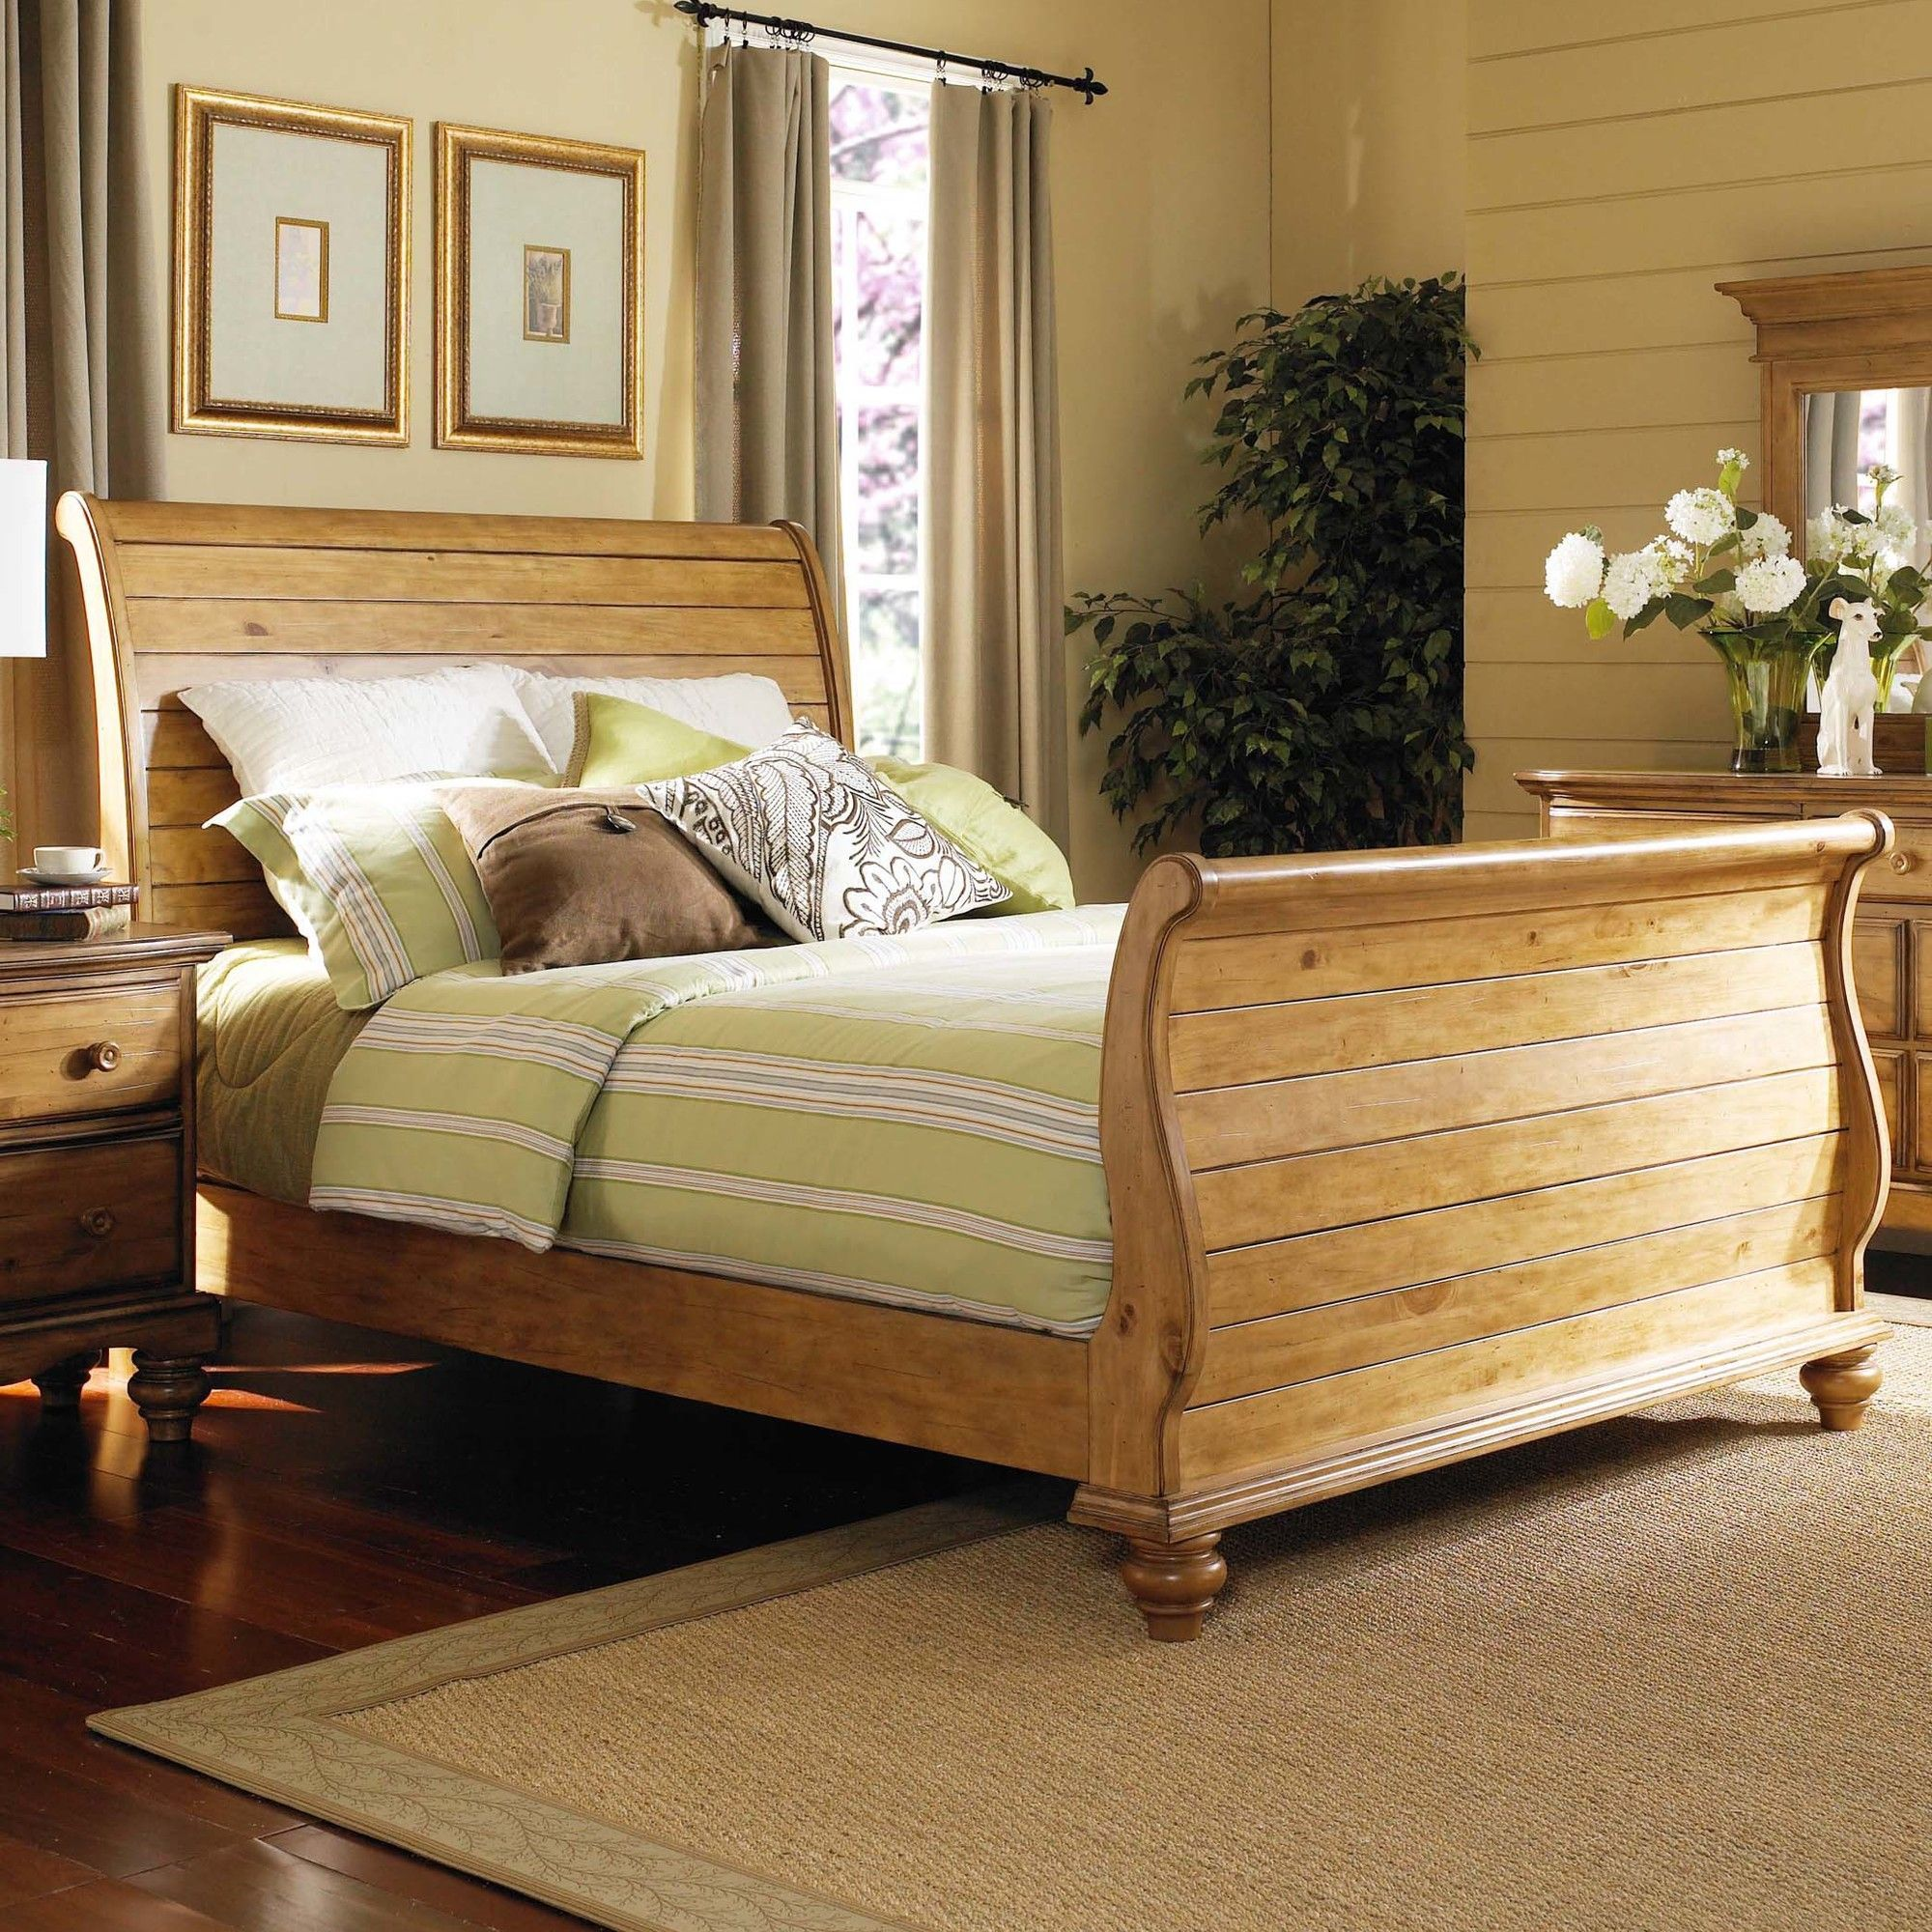 The Hamptons Weathers Pine Sleigh Bed Is The Piece Around Which